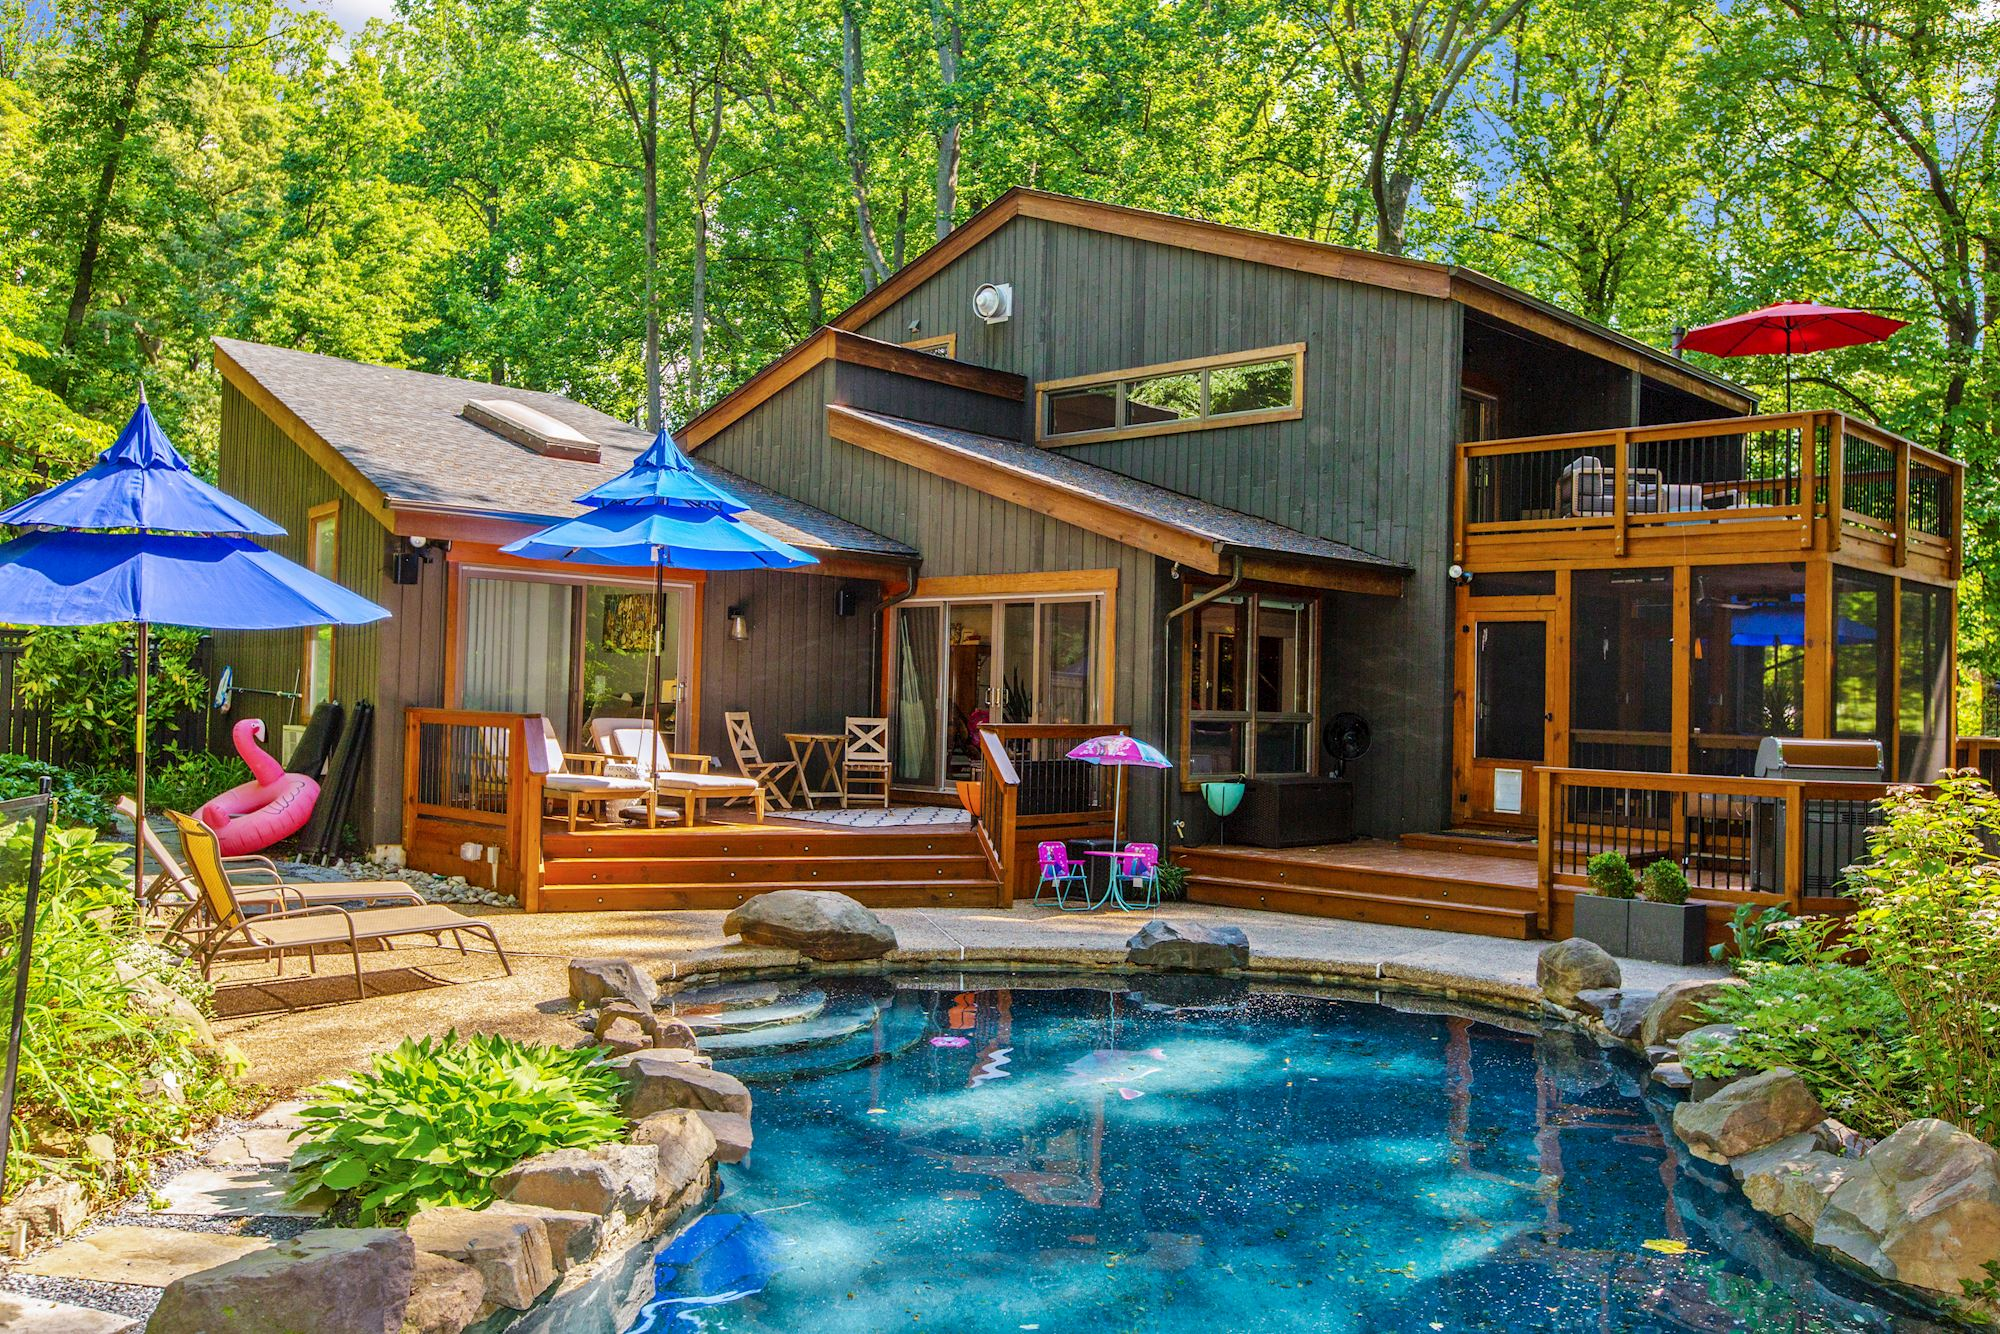 NEW LISTING: Contemporary Home on 1 Acre with Pool in Great Neighborhood